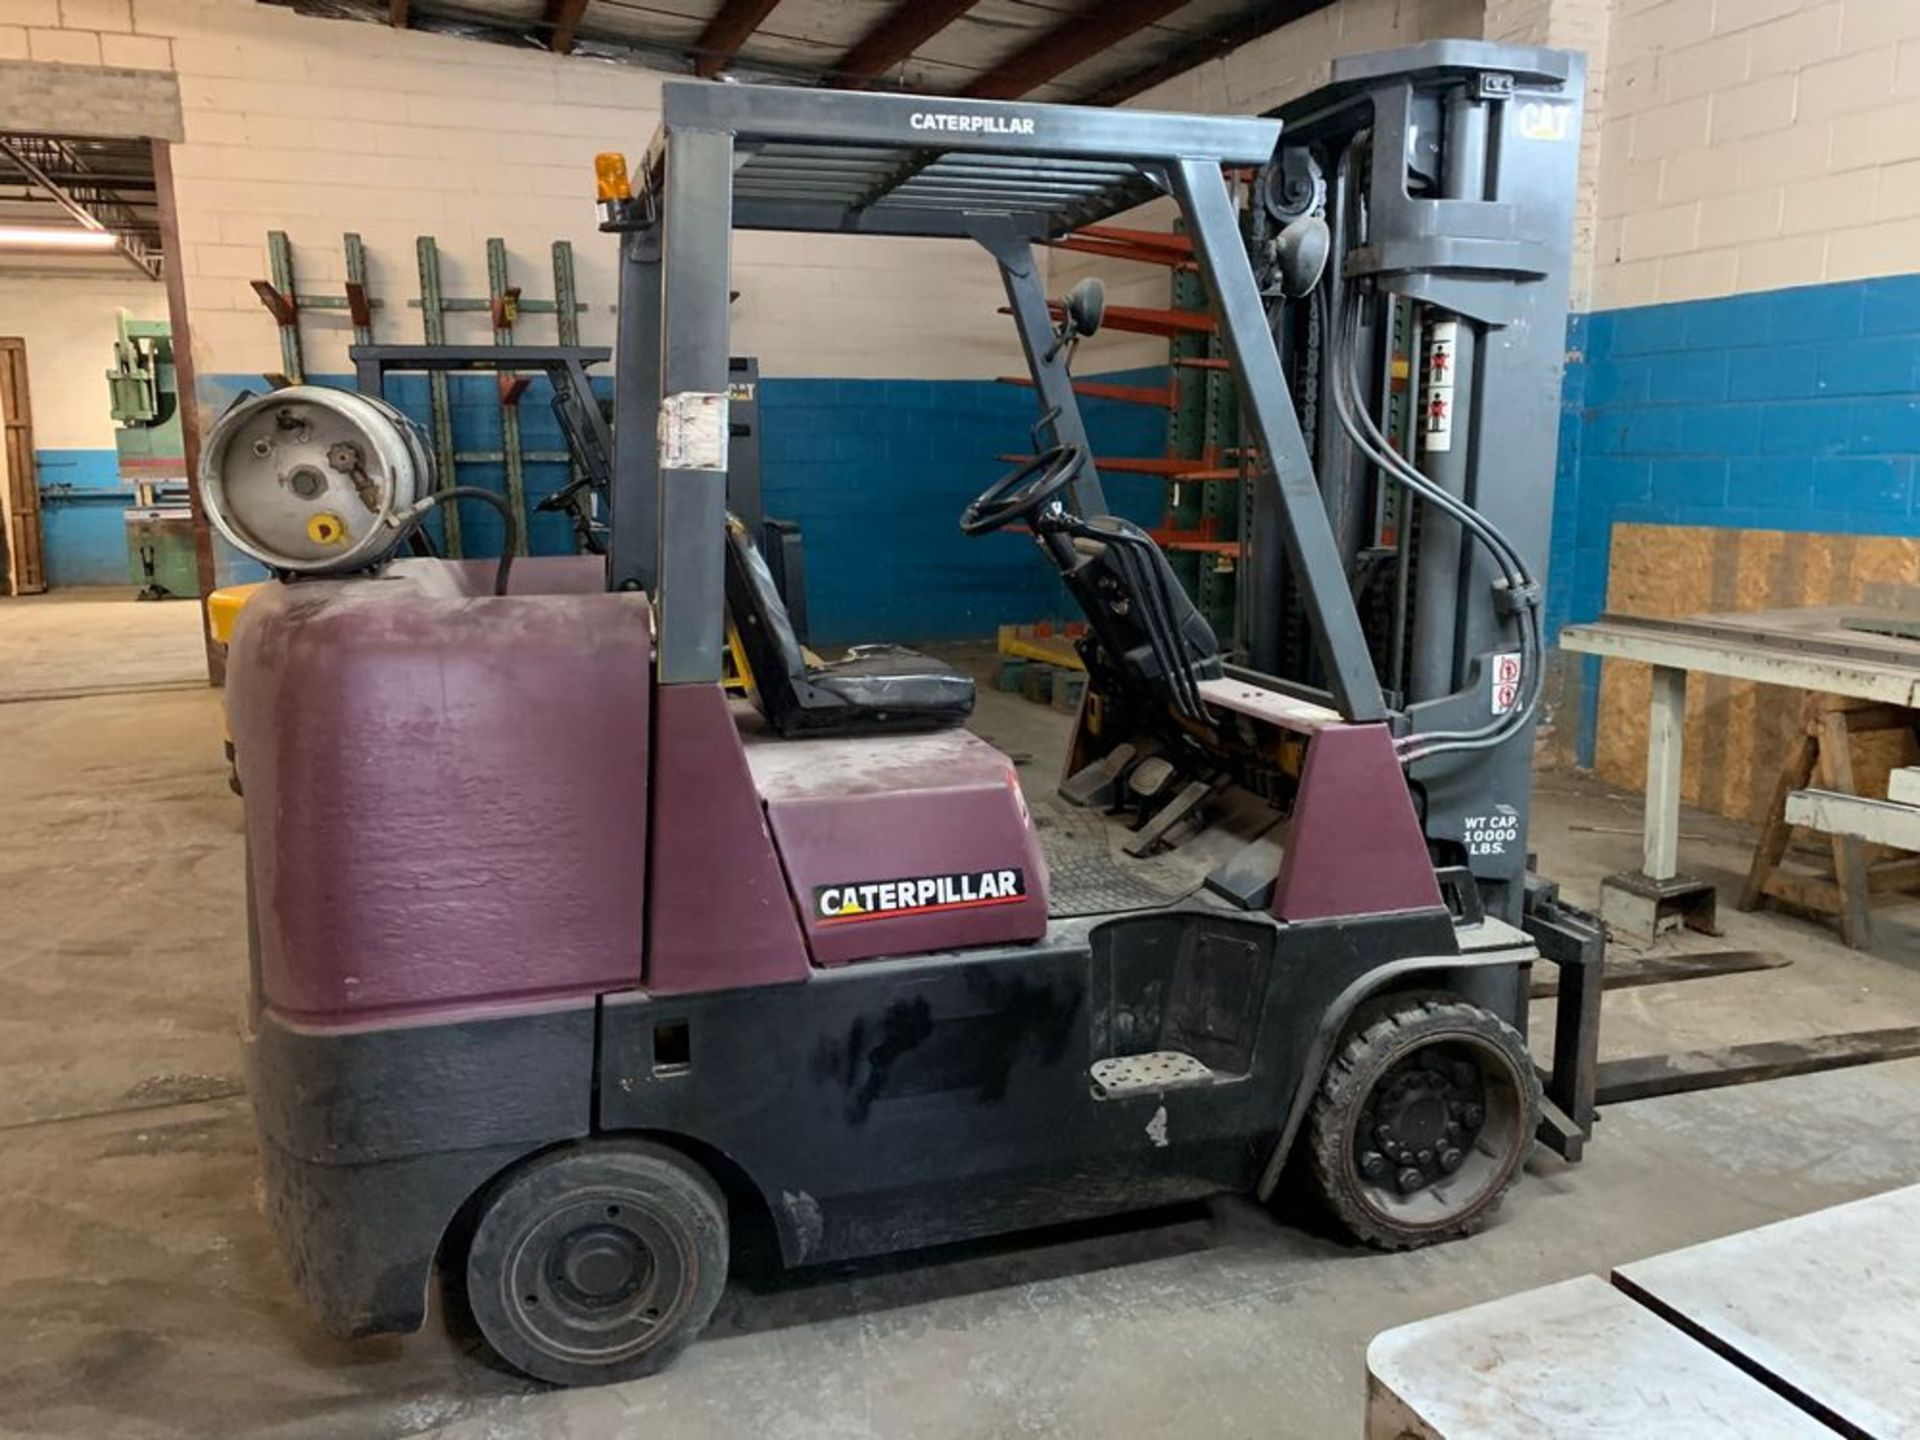 Lot 36 - 10,000 lb. Catepillar Forklift Model GC45KS1, Propane Tank NOT Included, s/n: AT87A01589